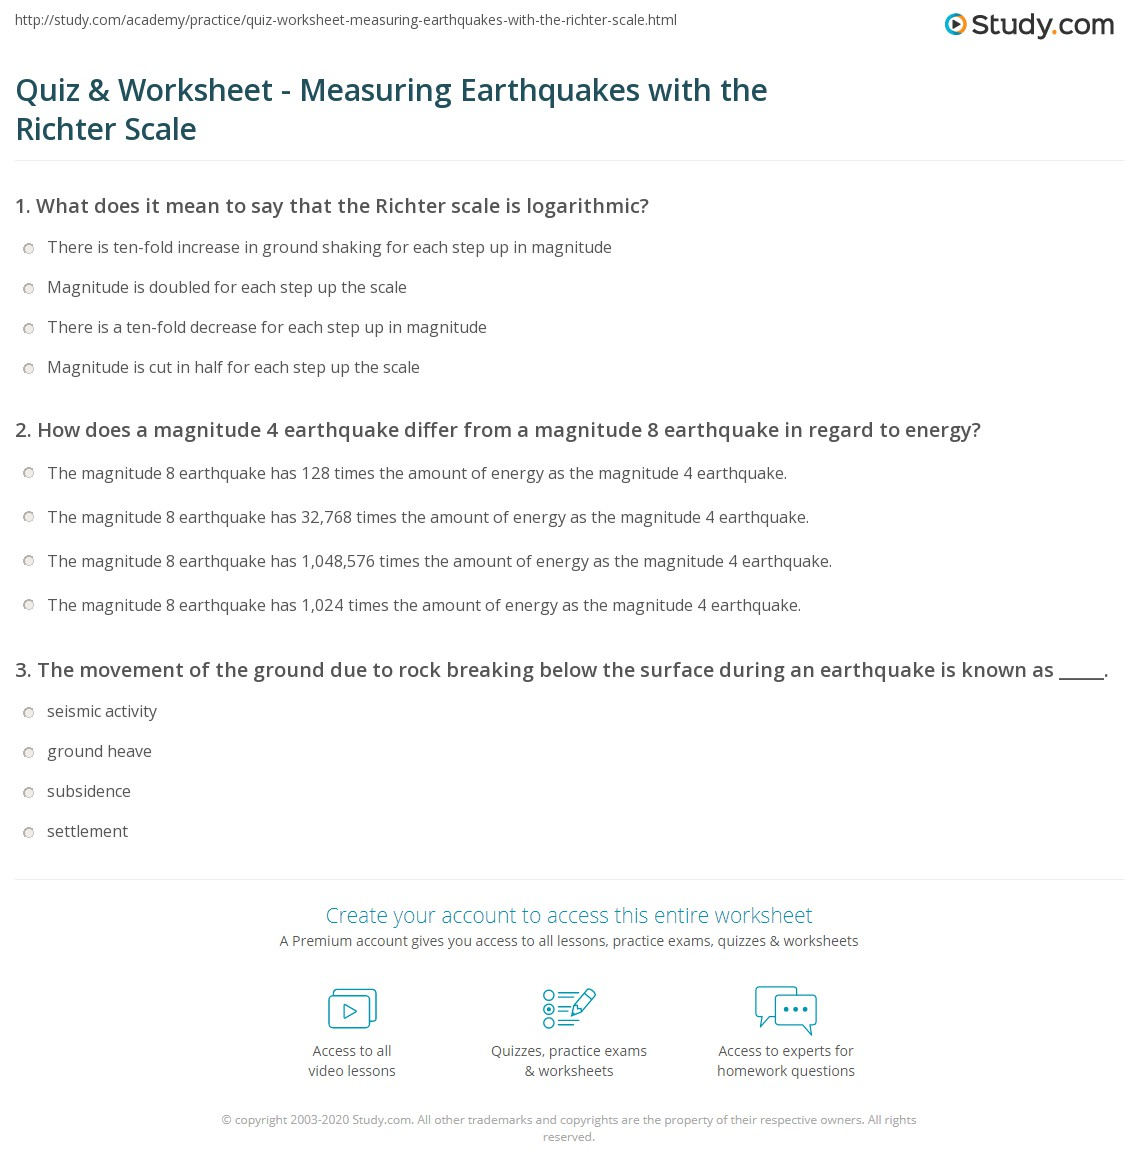 Quiz & Worksheet - Measuring Earthquakes with the Richter Scale ...